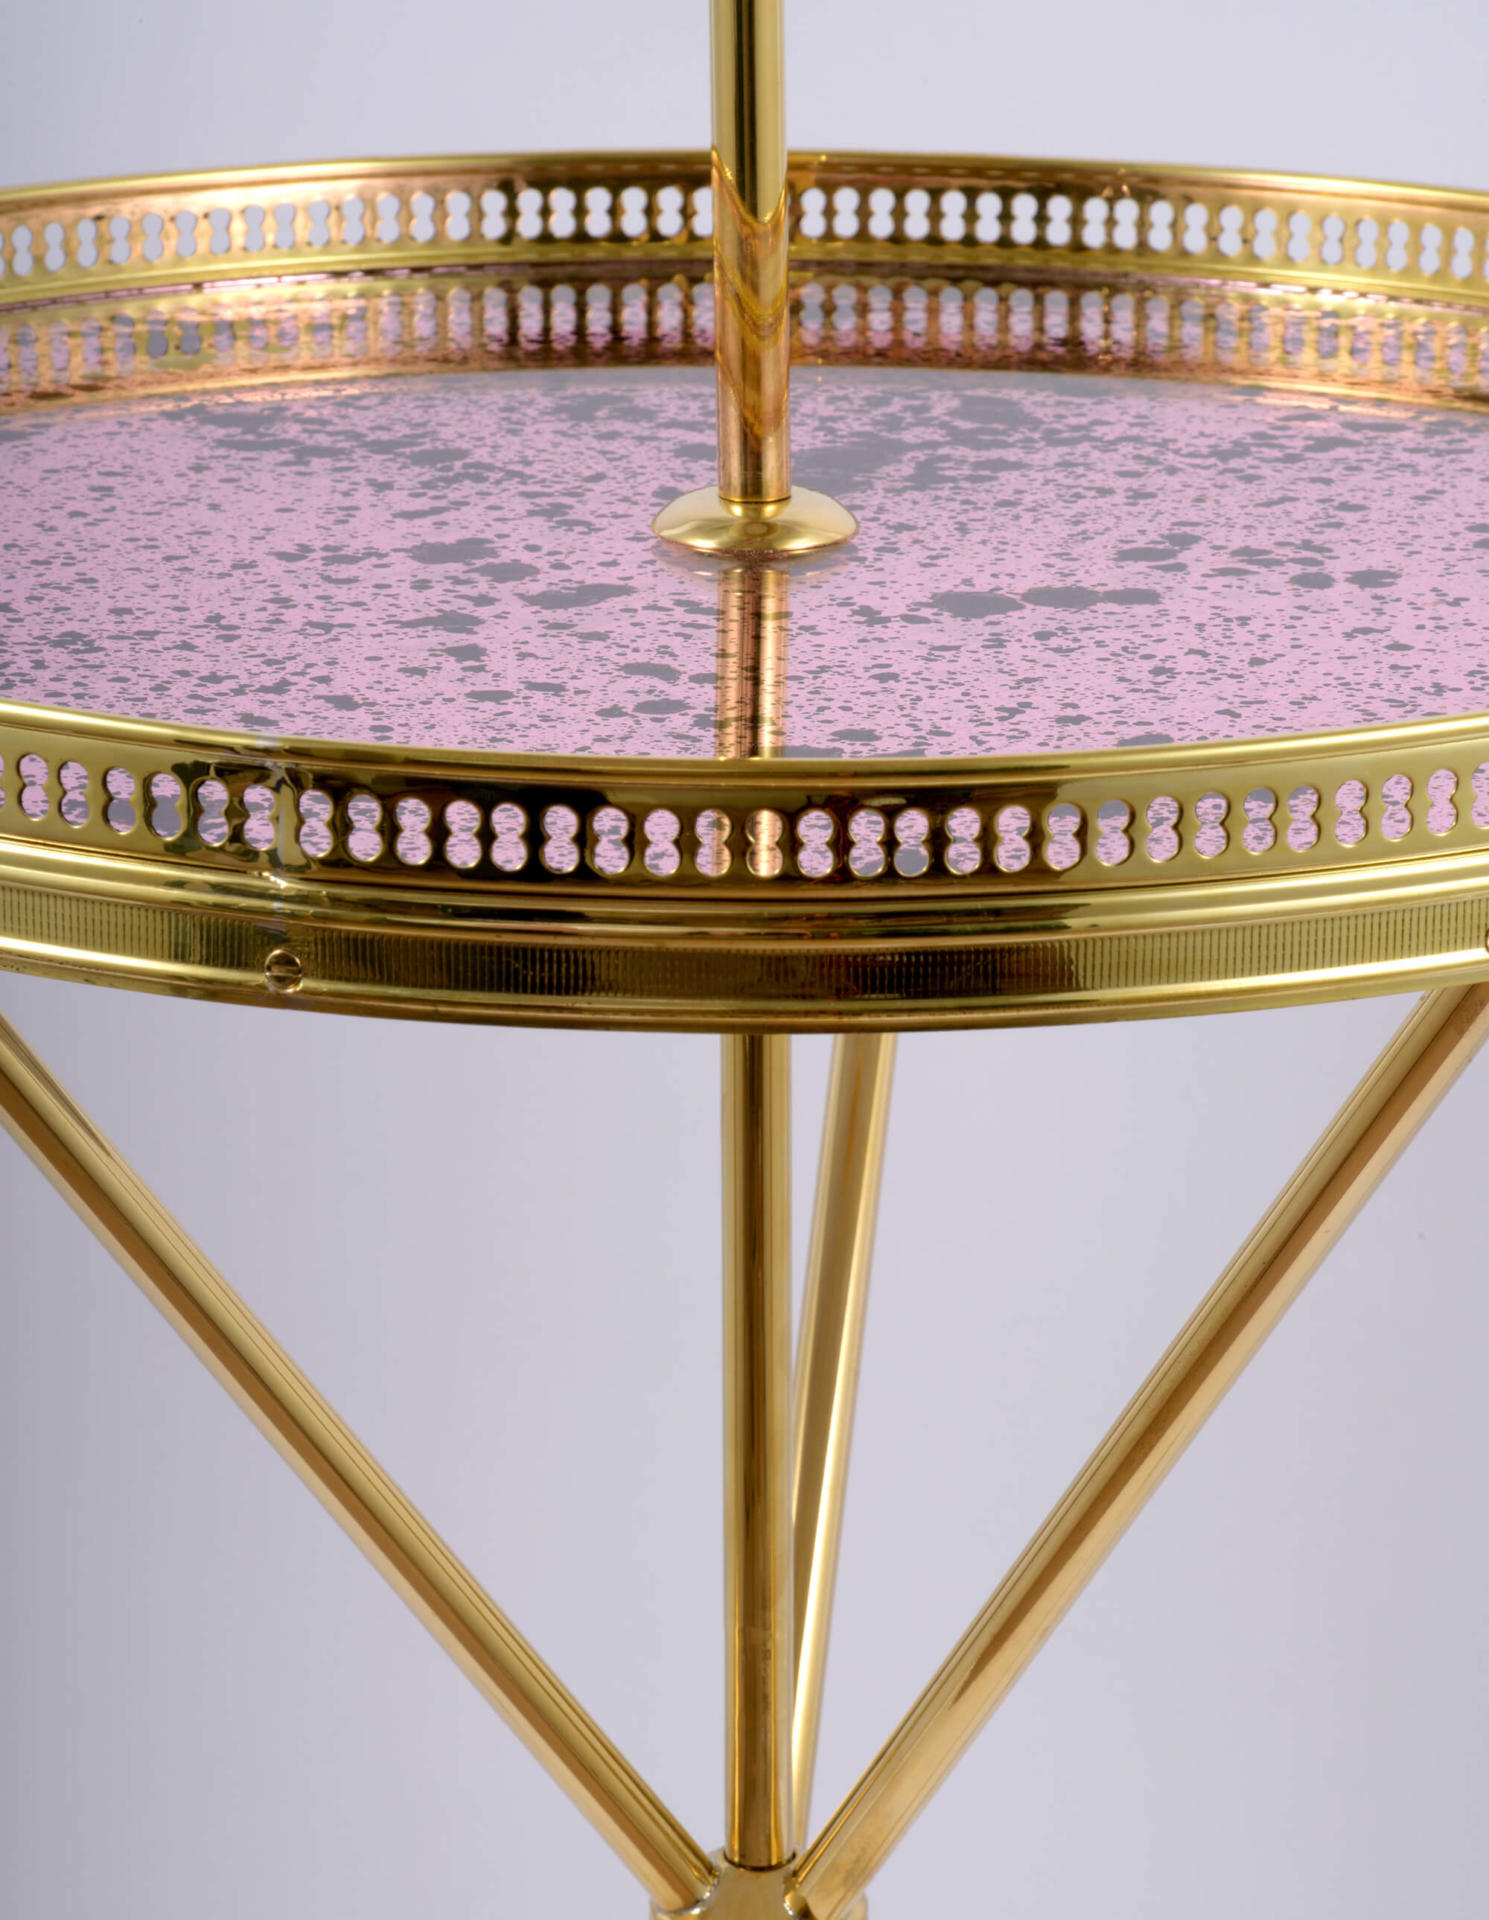 brass floor lamp with tray table